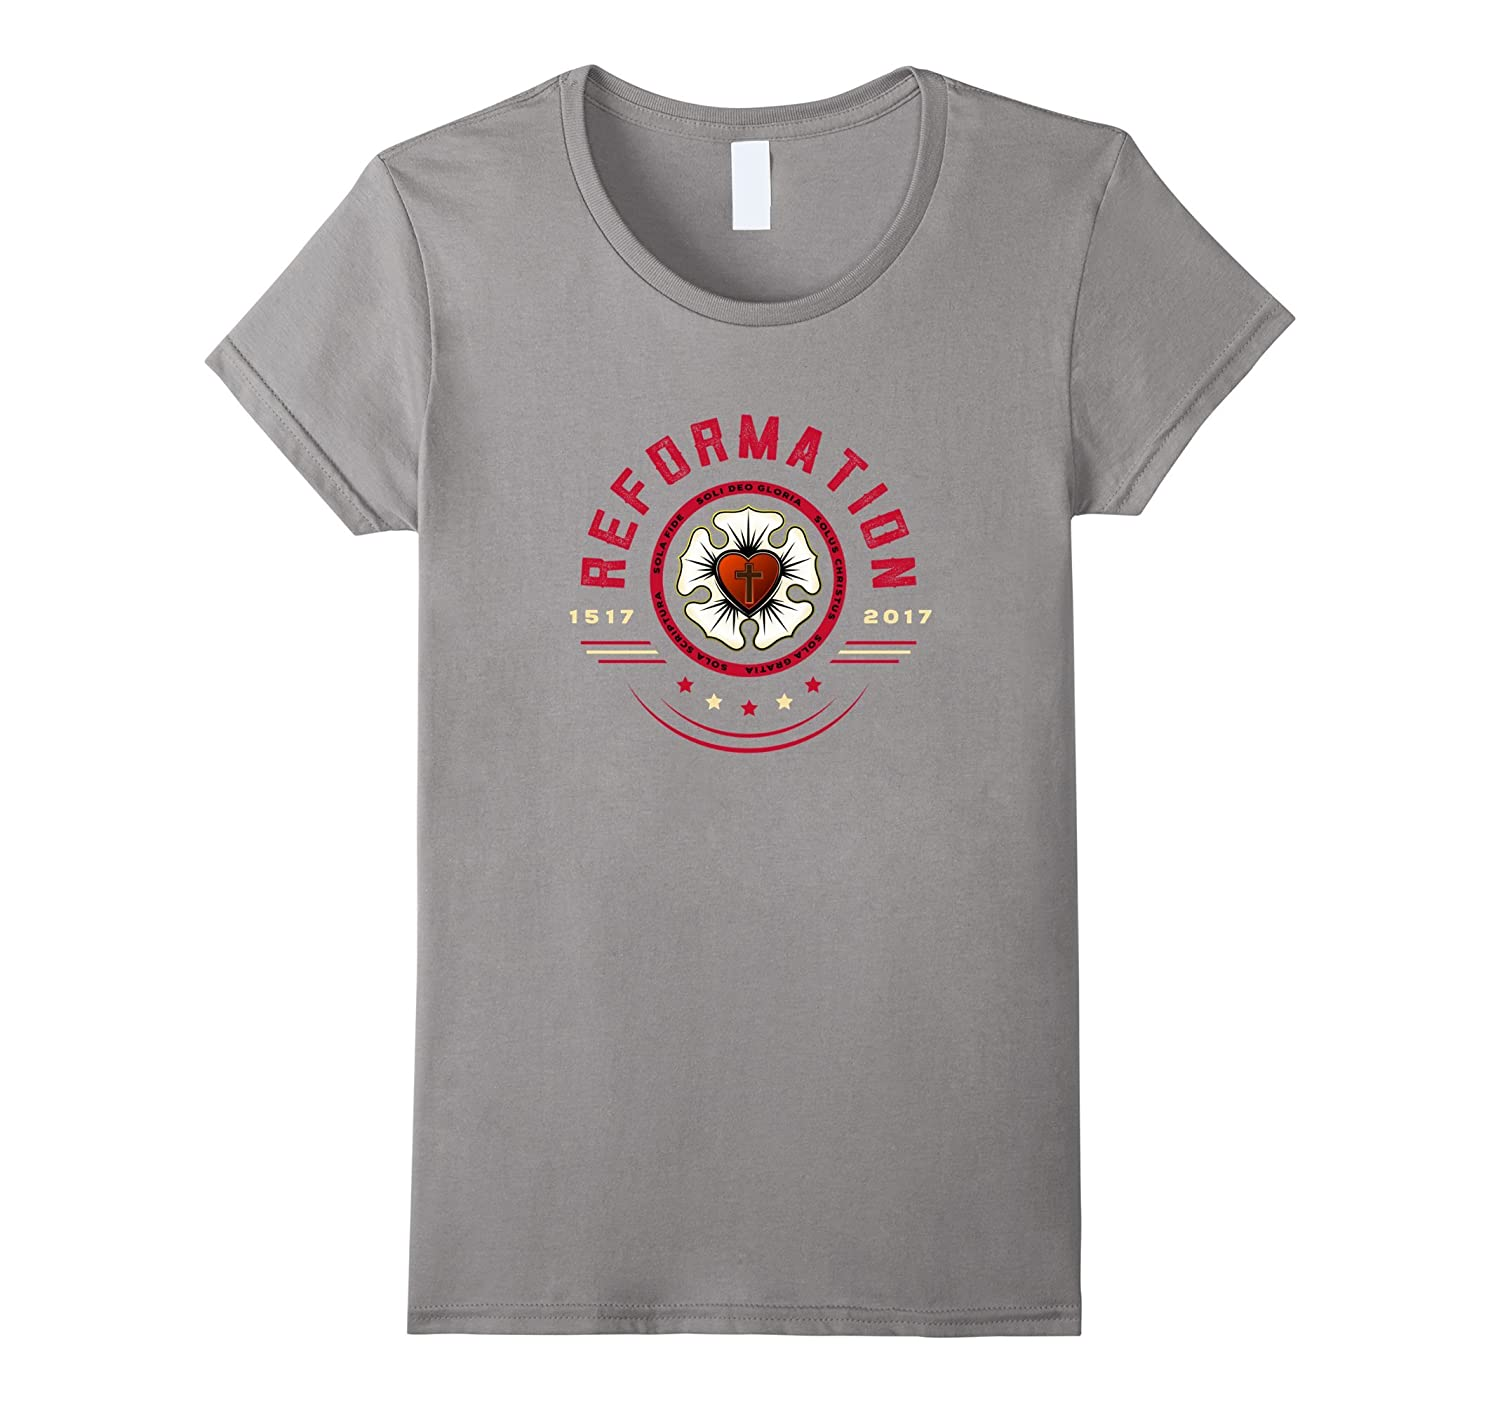 Reformation Martin Luther Rose Five Solas T-shirt